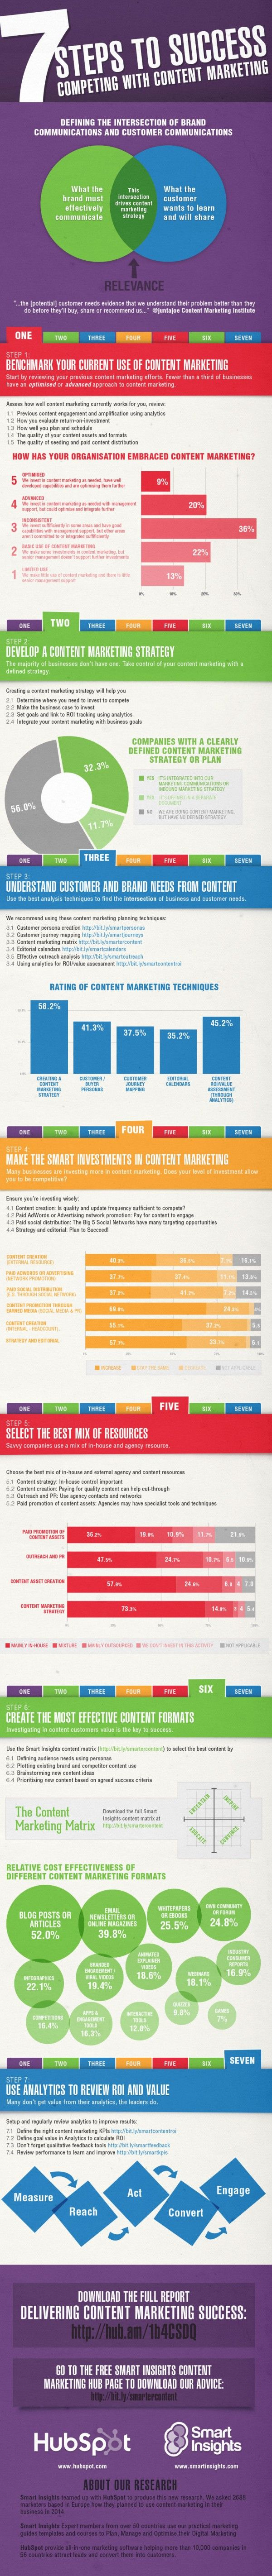 managing content #marketing #infographic